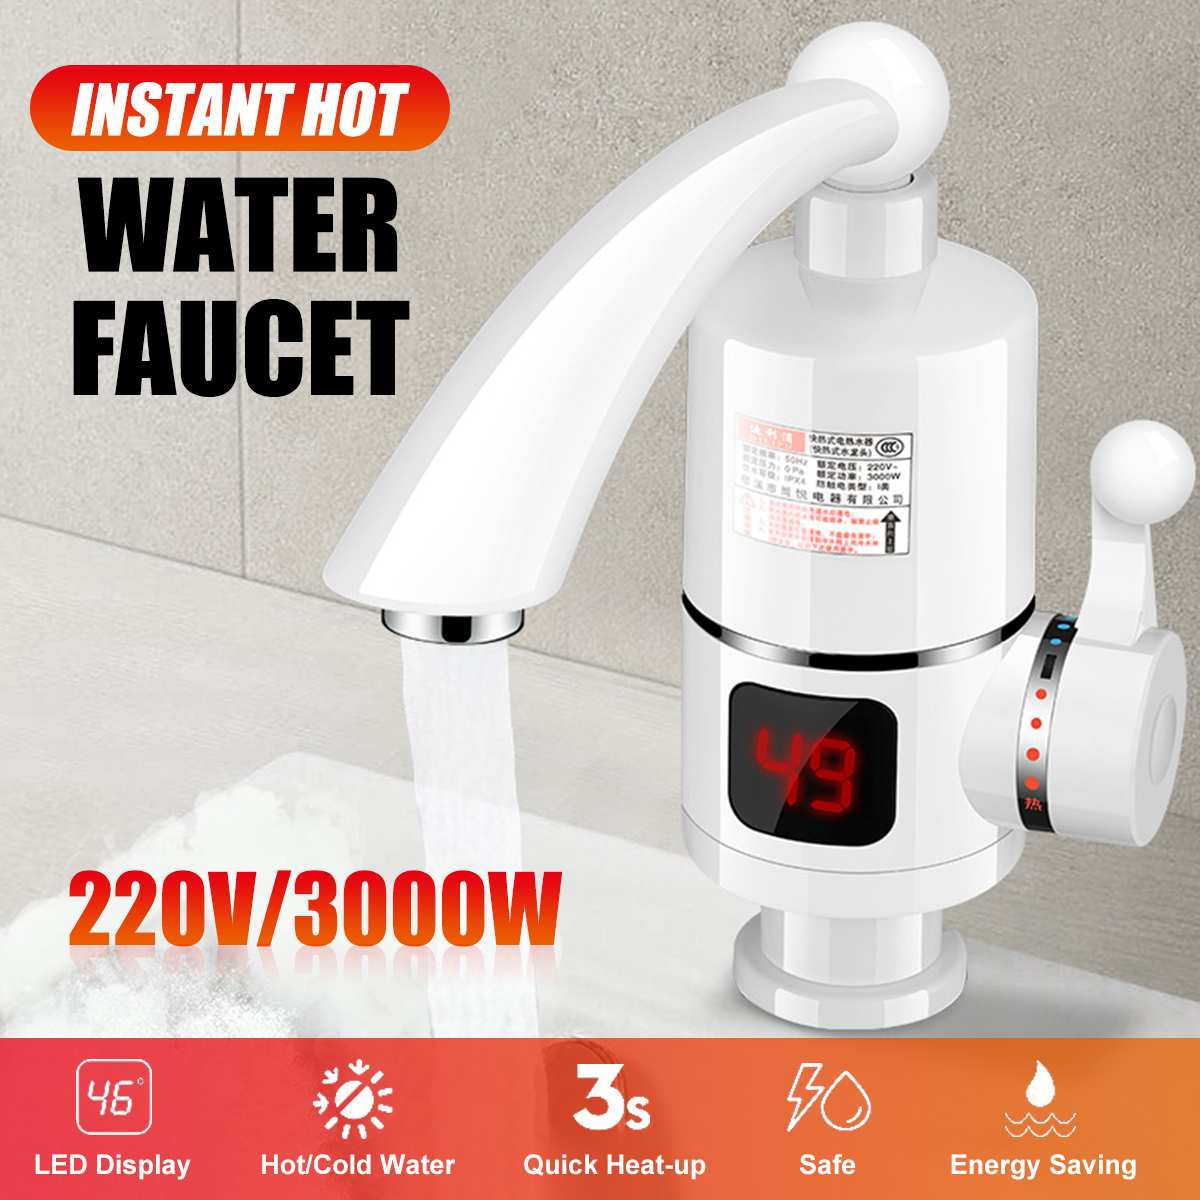 Electric Kitchen Water Heater Tap Instant Hot Water Faucet Heater Cold Heating Faucet Tankless Instantaneous Water Heater 220V